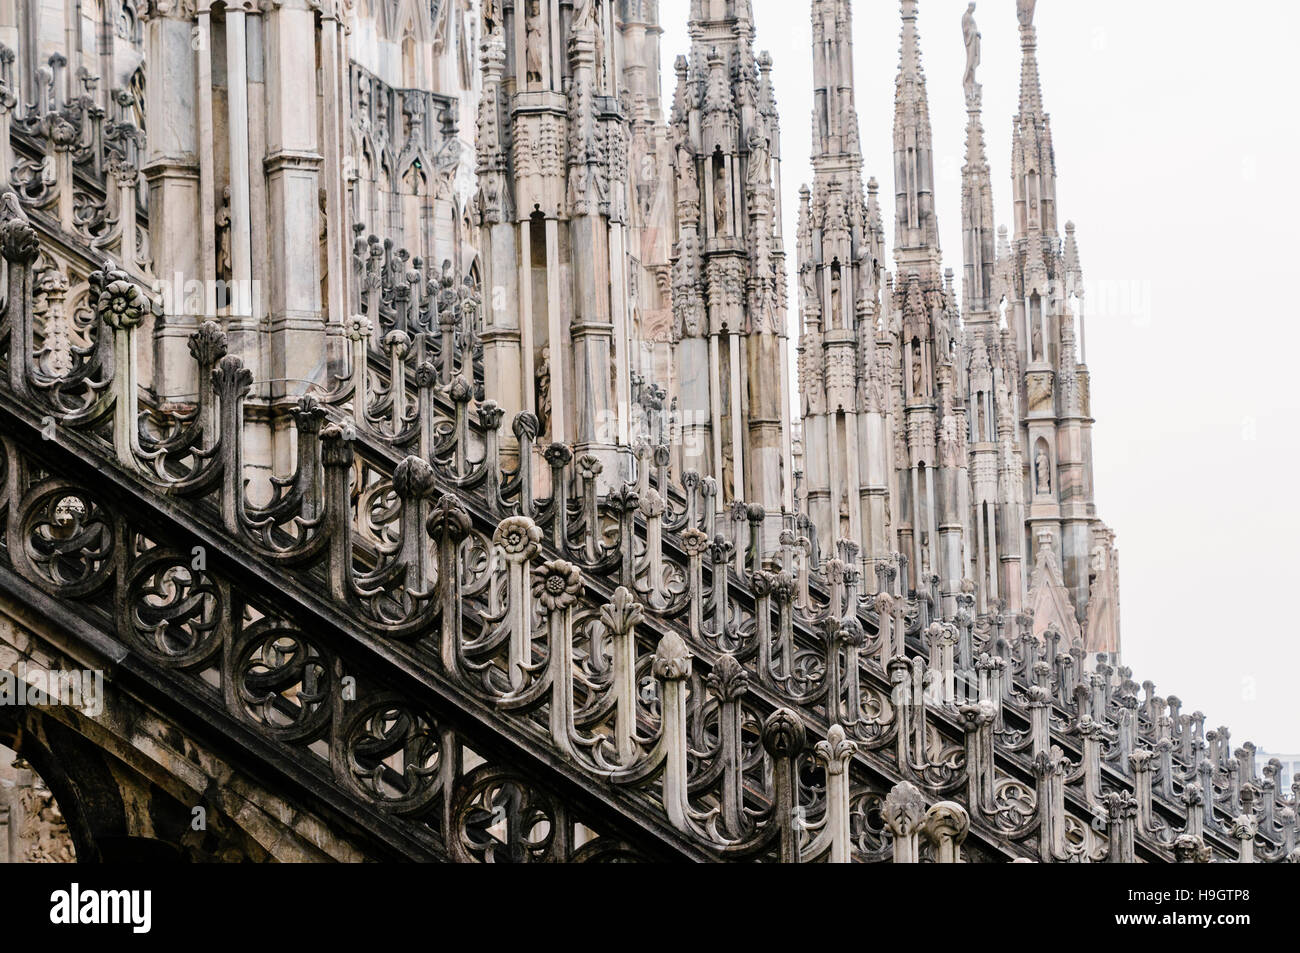 Flying Buttress And Ornately Carved Stonework On The Roof Of Duomo Milano Milan Cathedral Italy